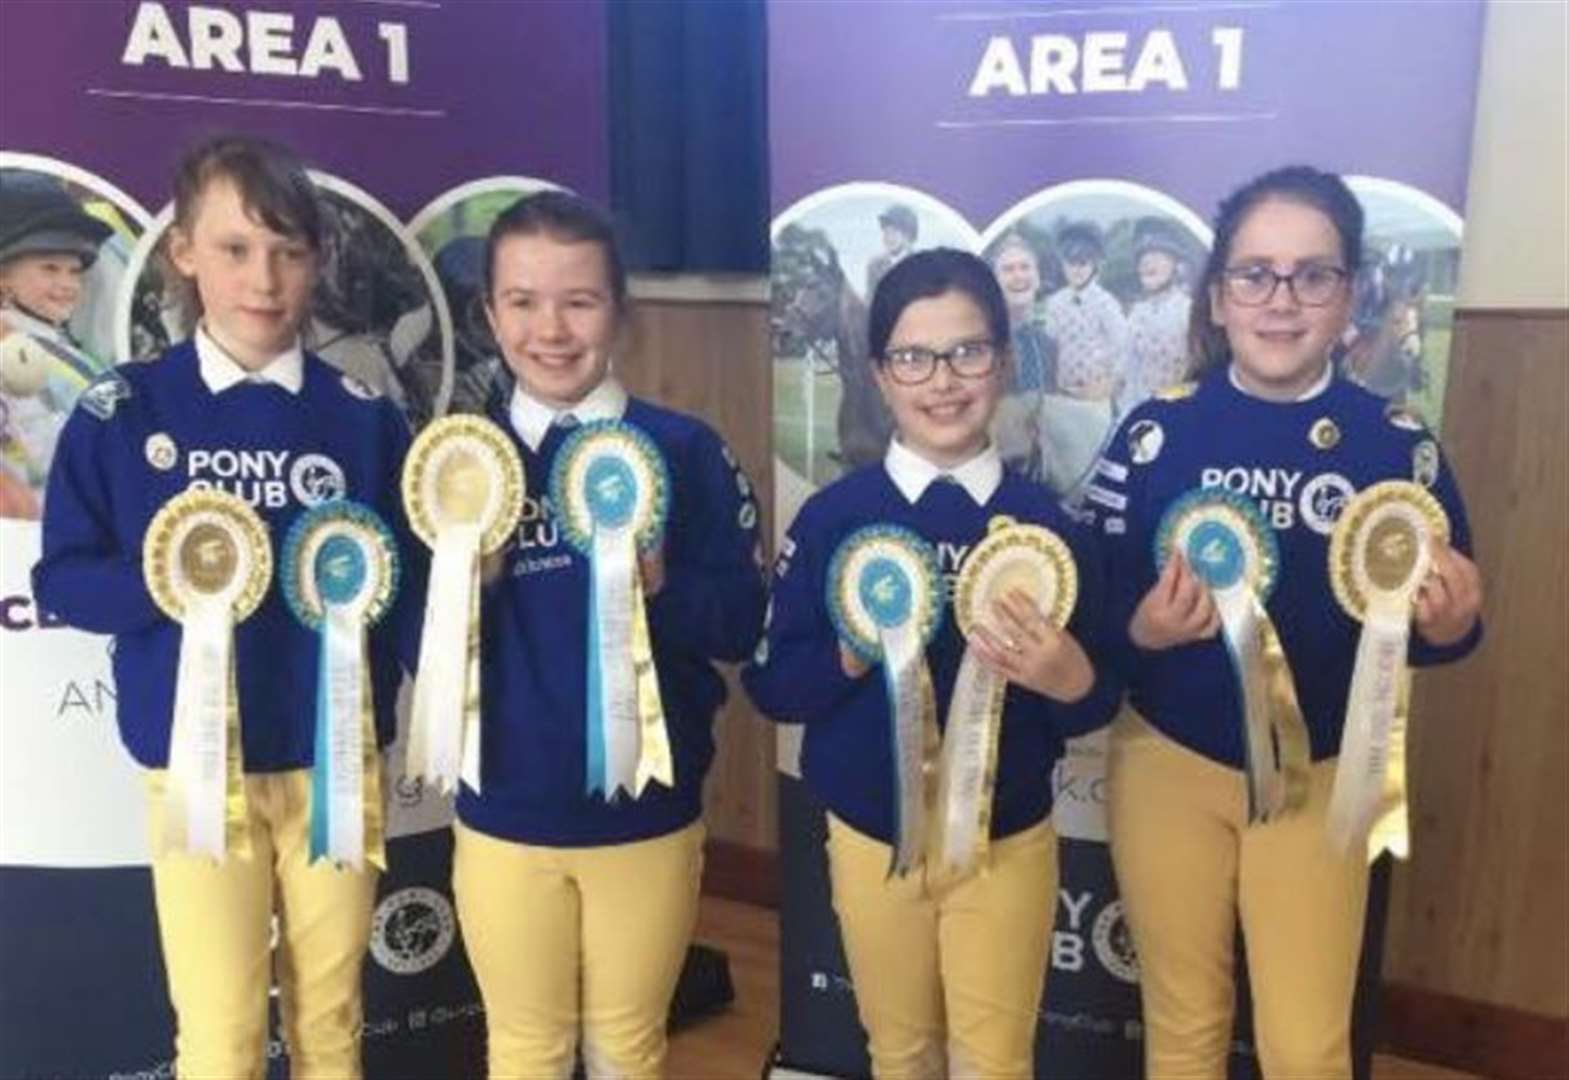 Caithness members impress in in Pony Club quiz competition